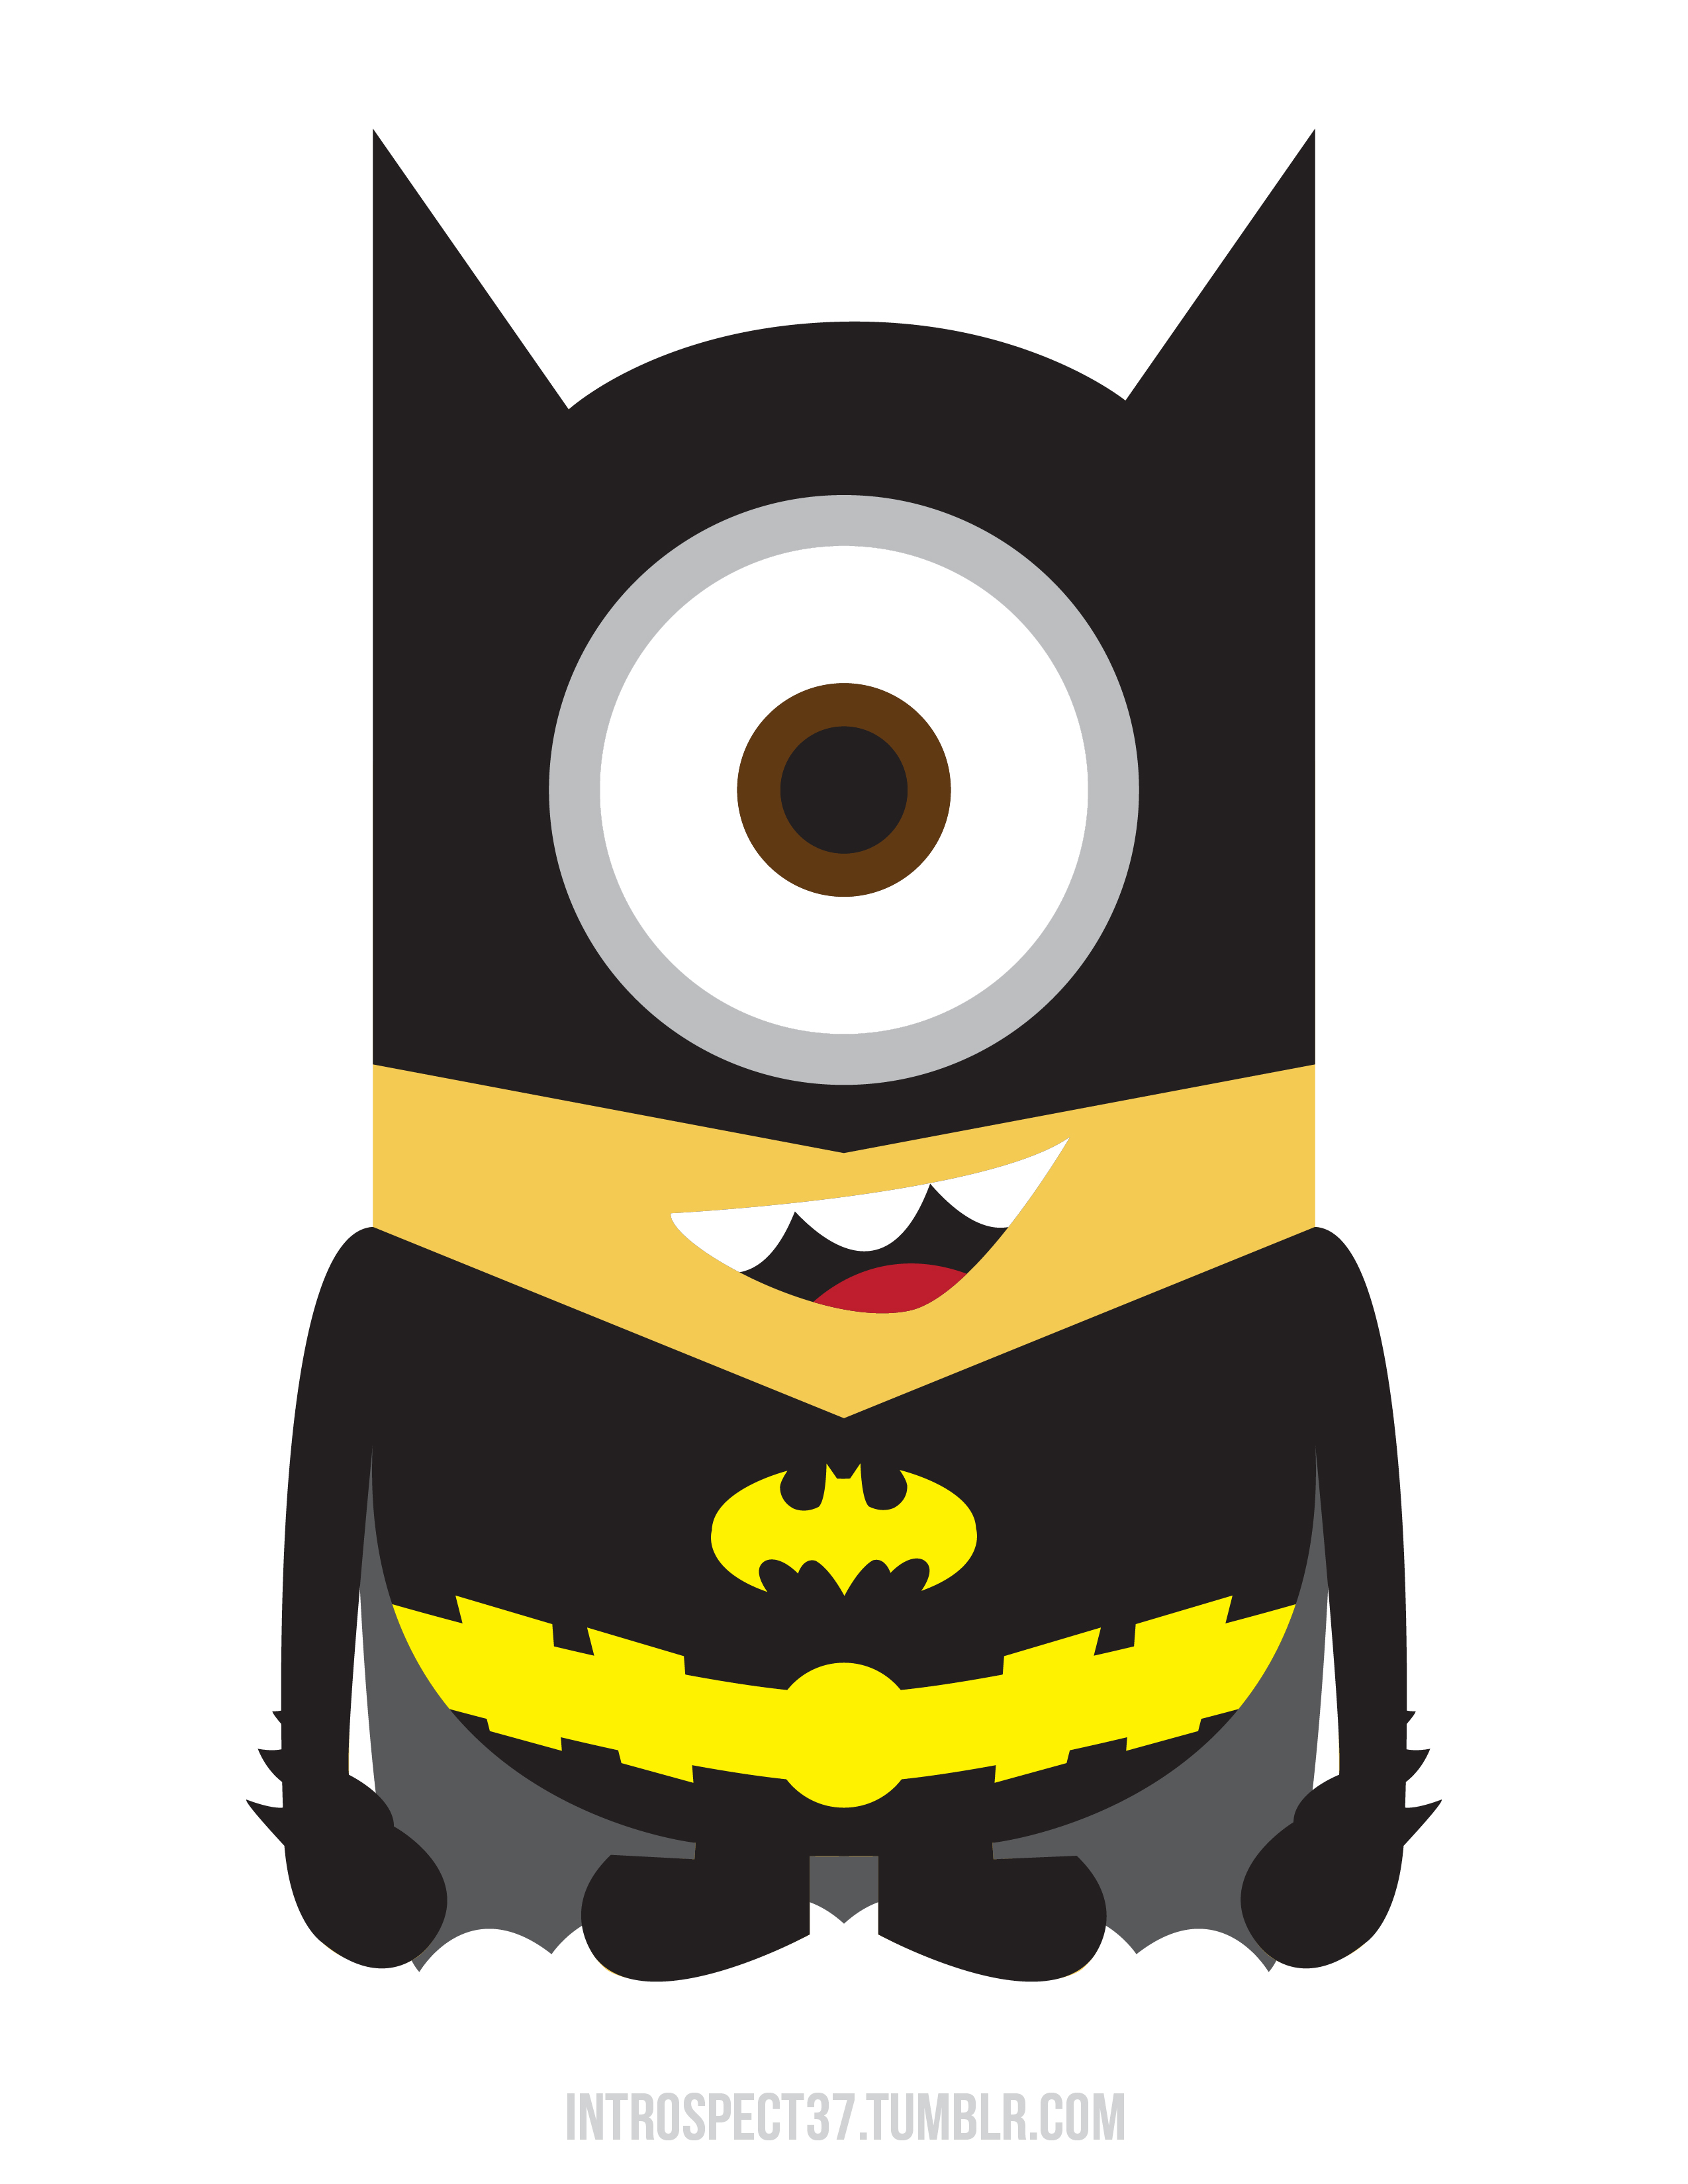 Superhéros Minions superhero minion 011 540x700